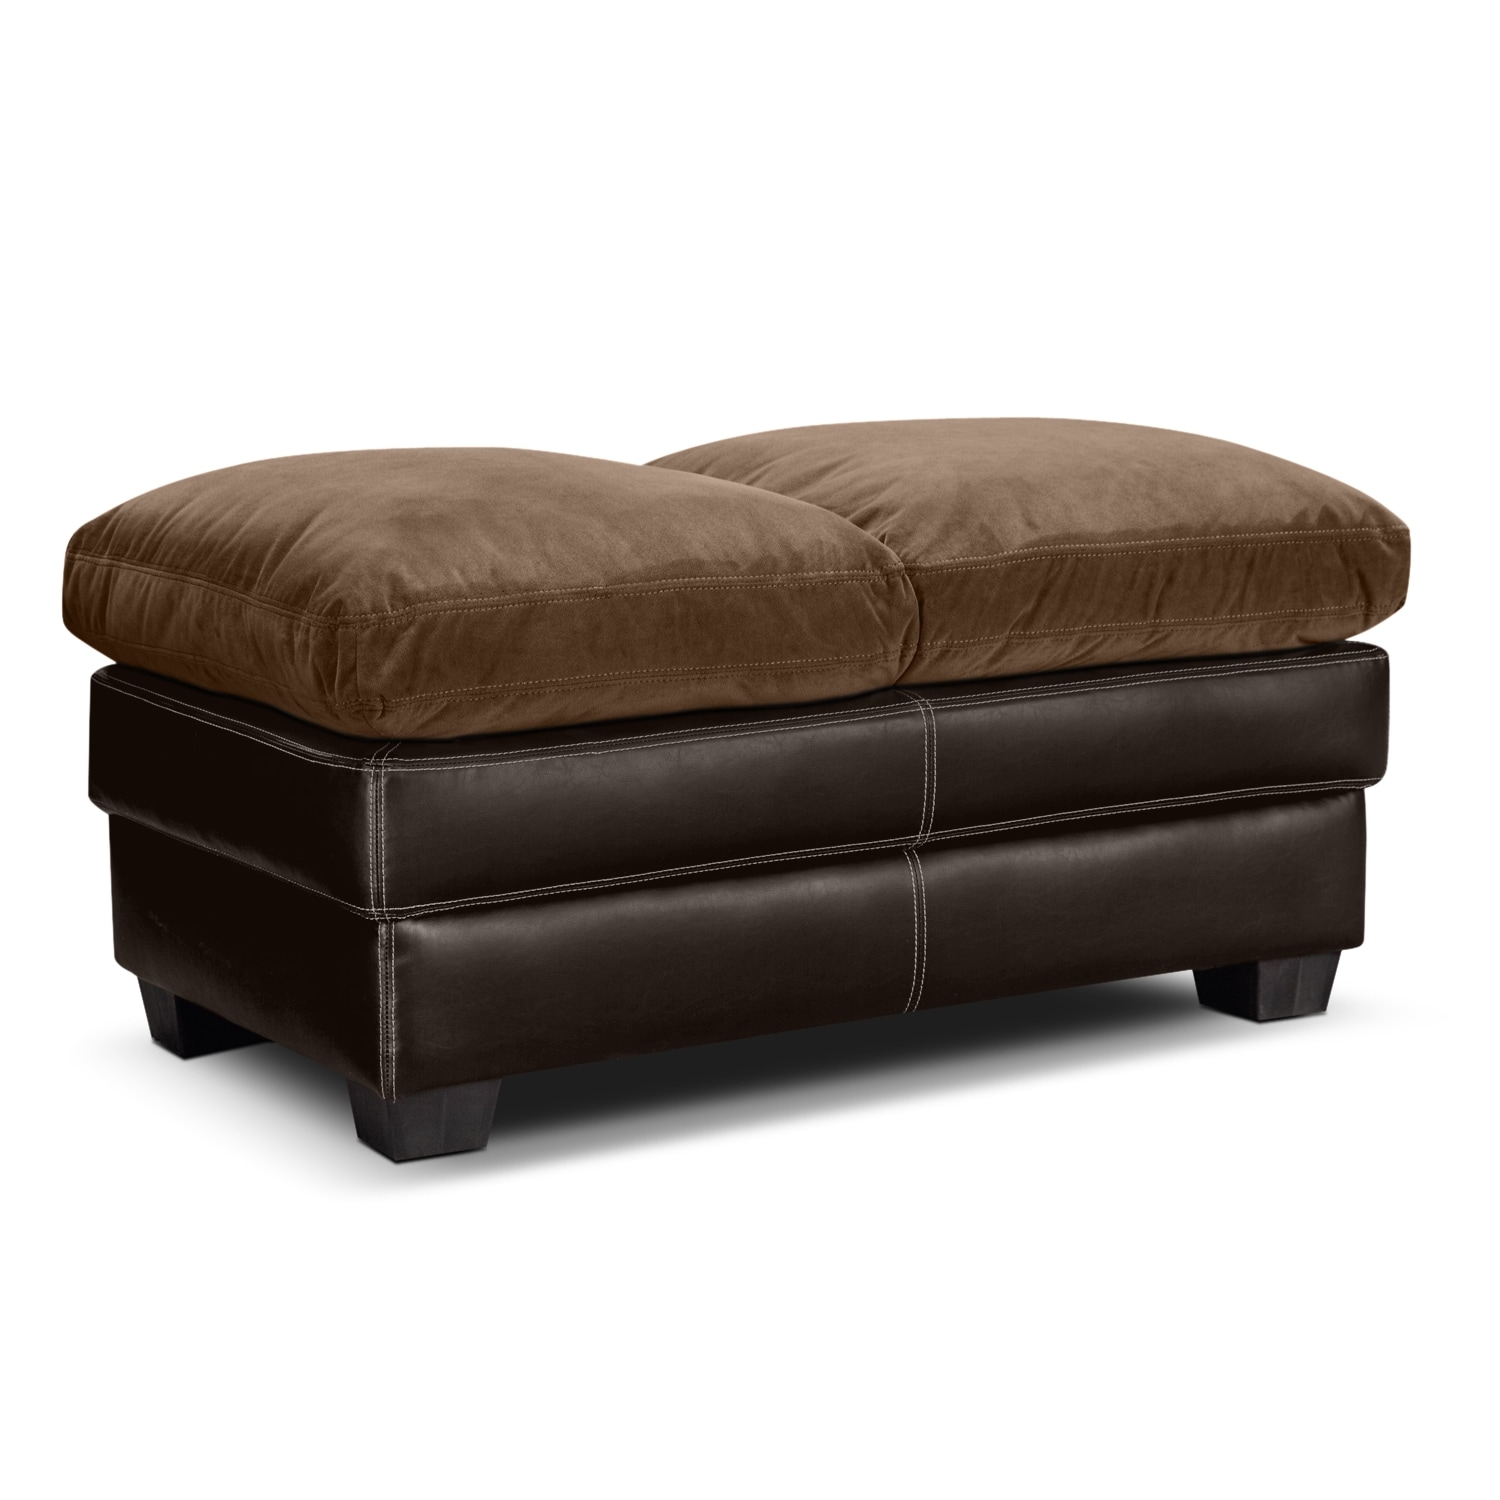 Chandler Beige Cocktail Ottoman